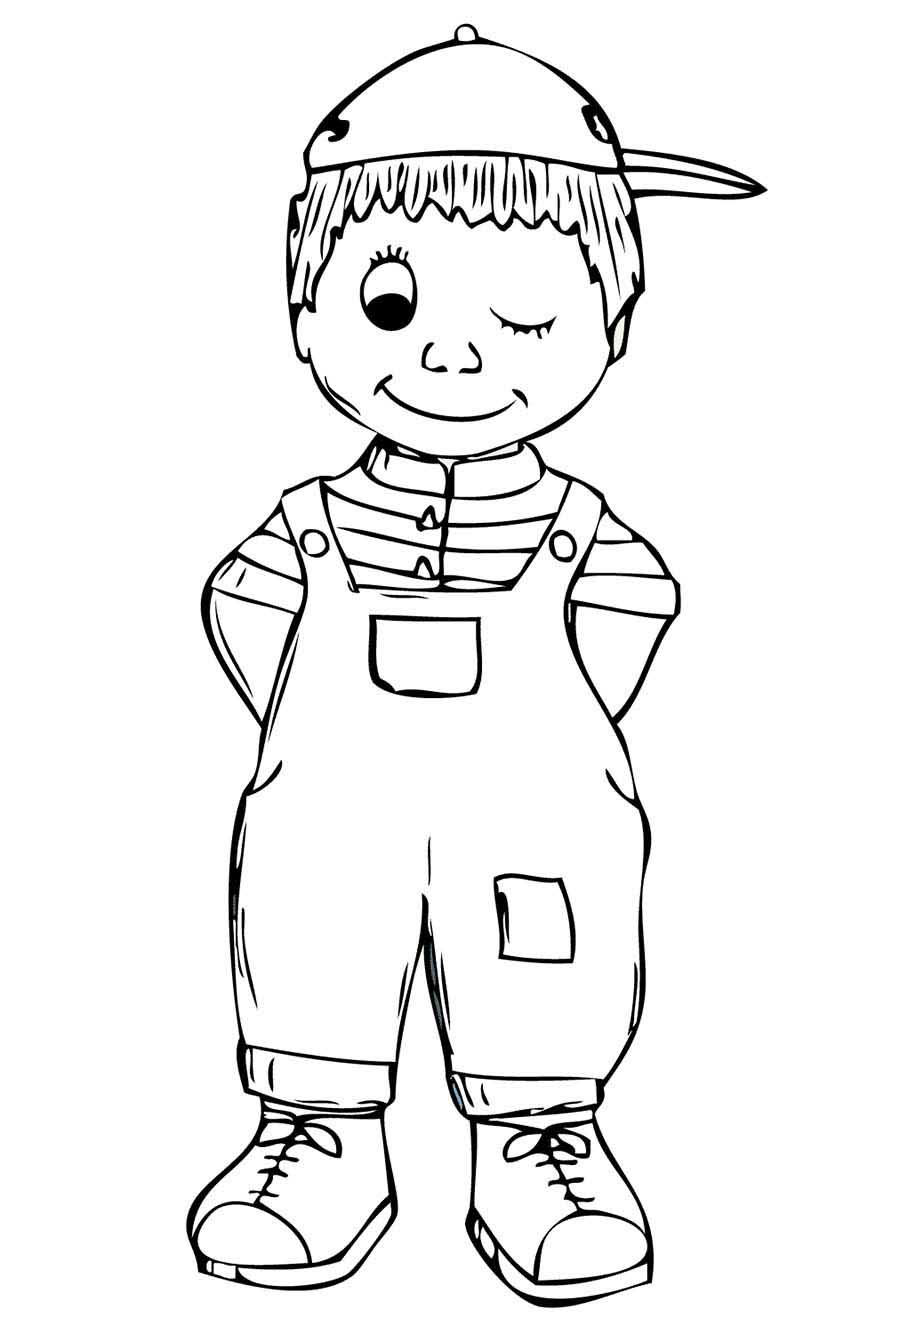 coloring sheet boy boy coloring pages to download and print for free coloring boy sheet 1 1